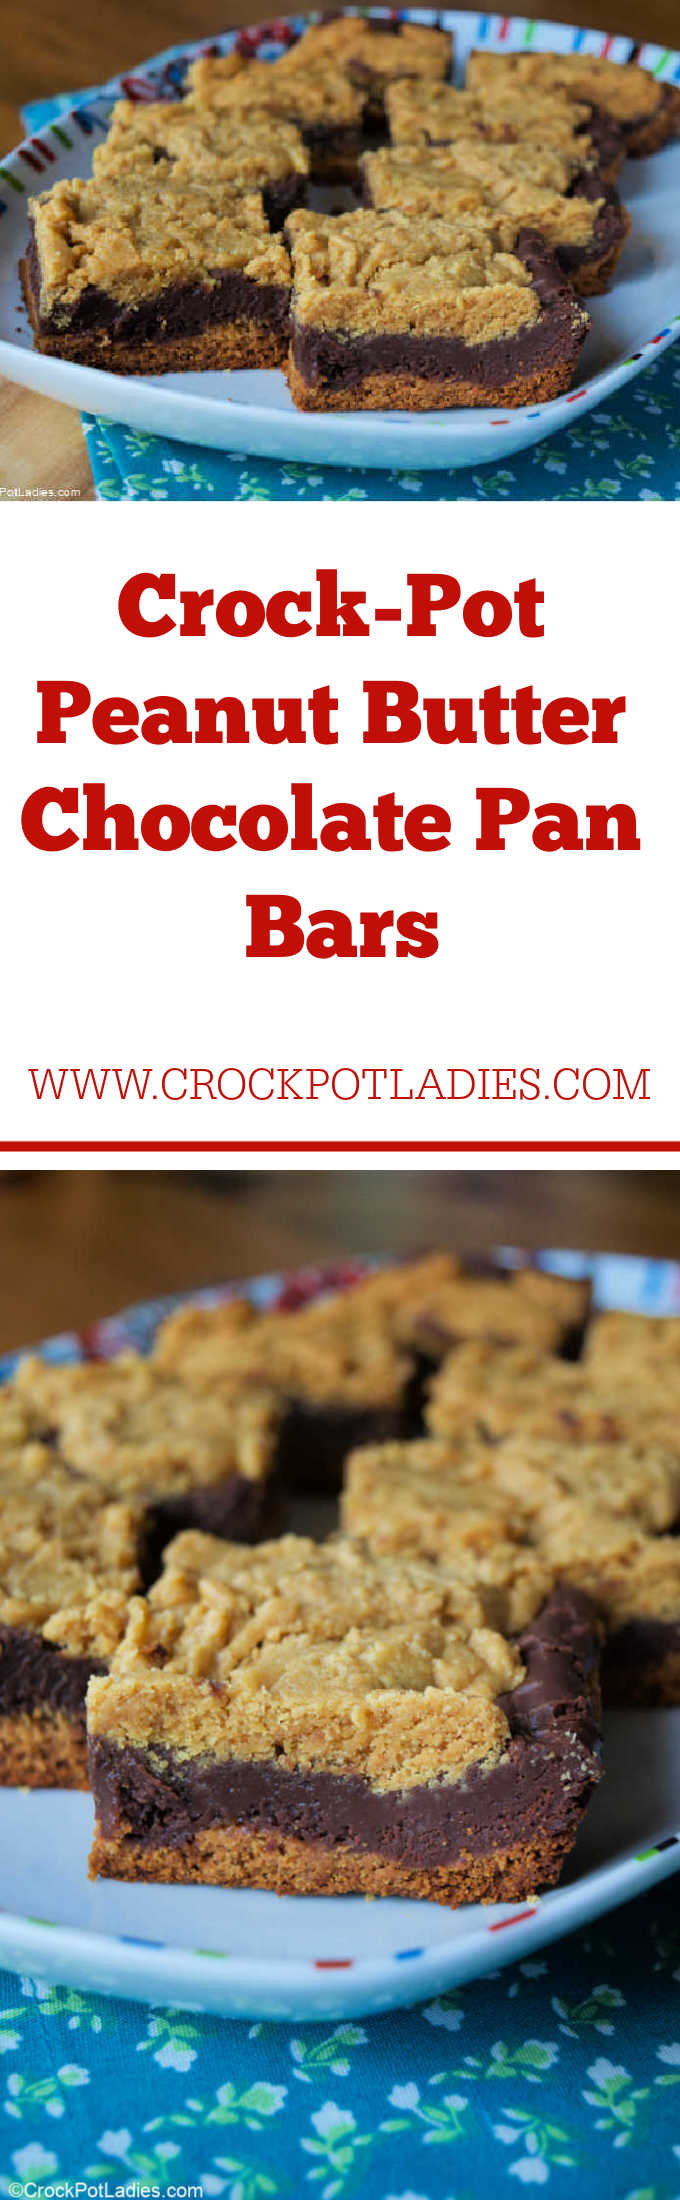 """A collage image with text overlay that reads """"Crock-Pot Peanut Butter Chocolate Pan Bars"""" and 'CrockPotLadies.com"""" showing two images showing a white platter holding chocolate and peanut butter baked snack bars resting on a blue floral fabric."""